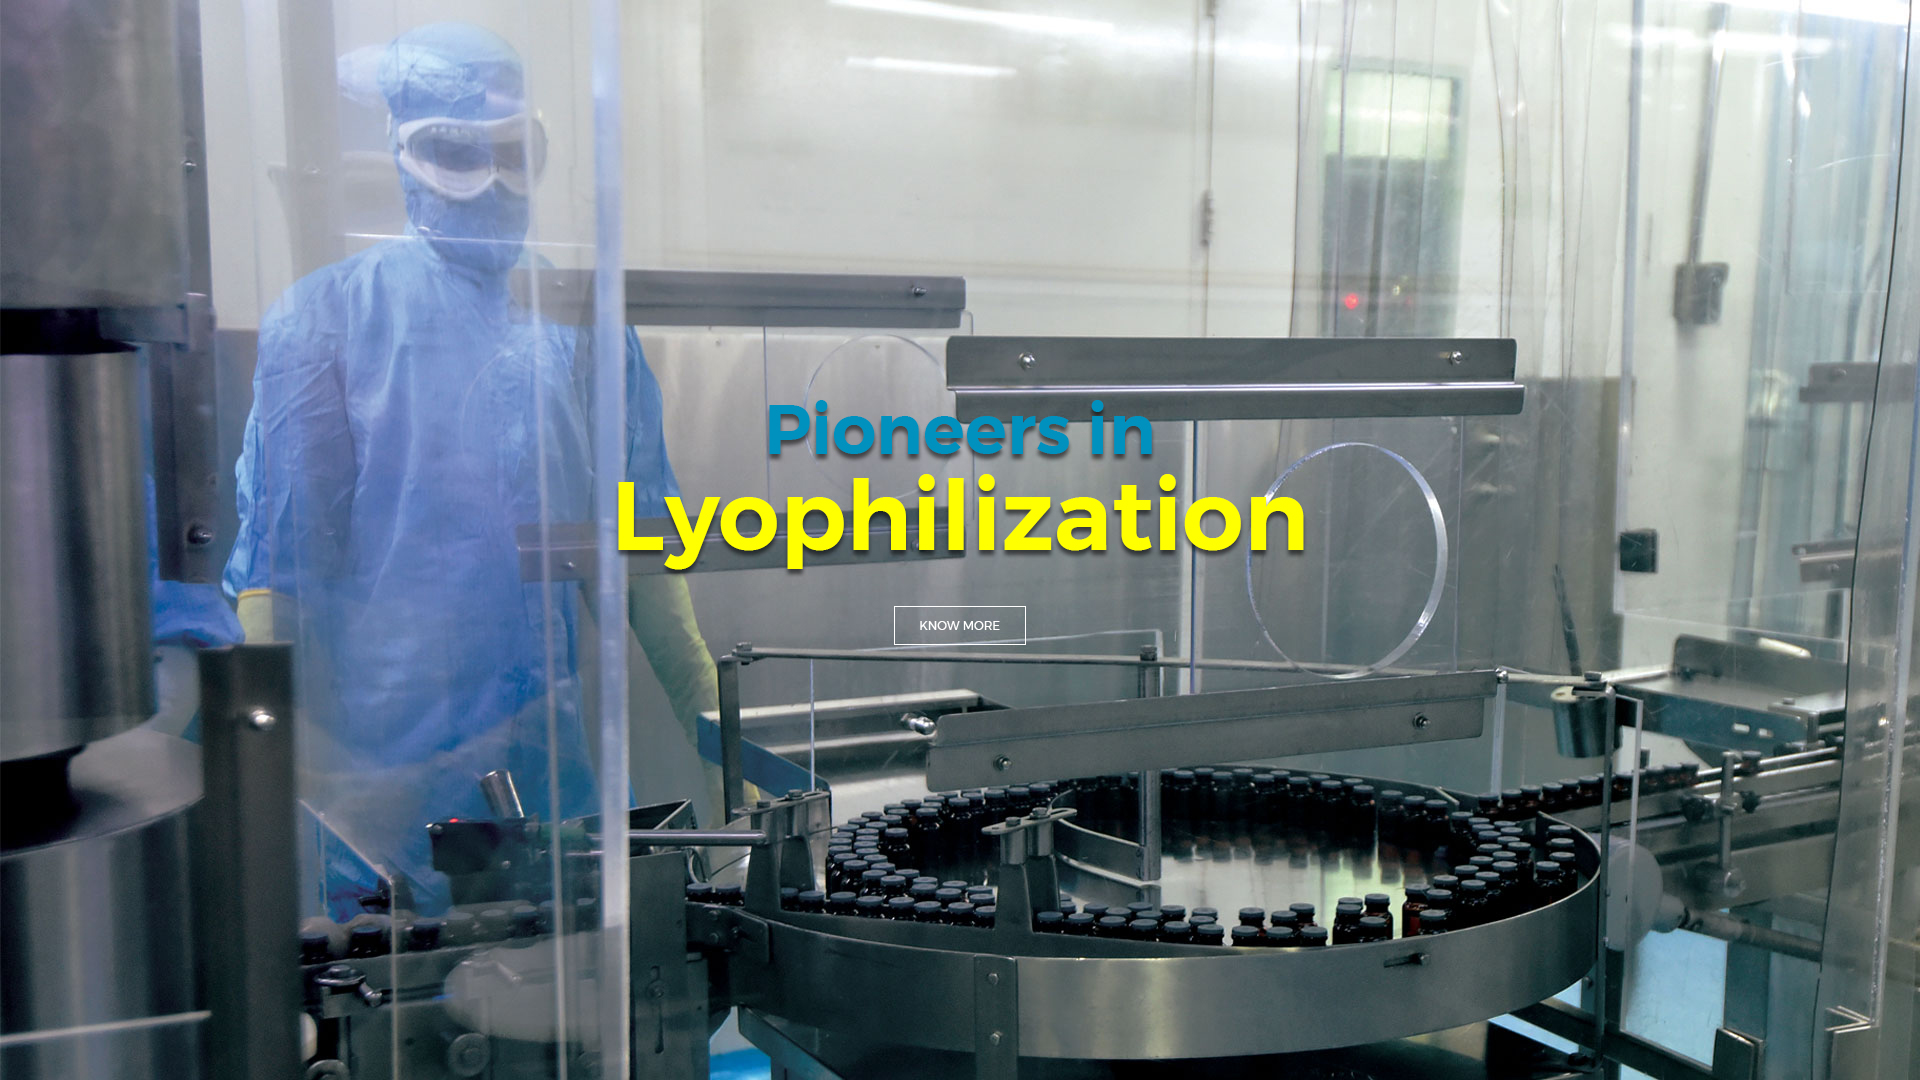 Pioneers in Lyophilization